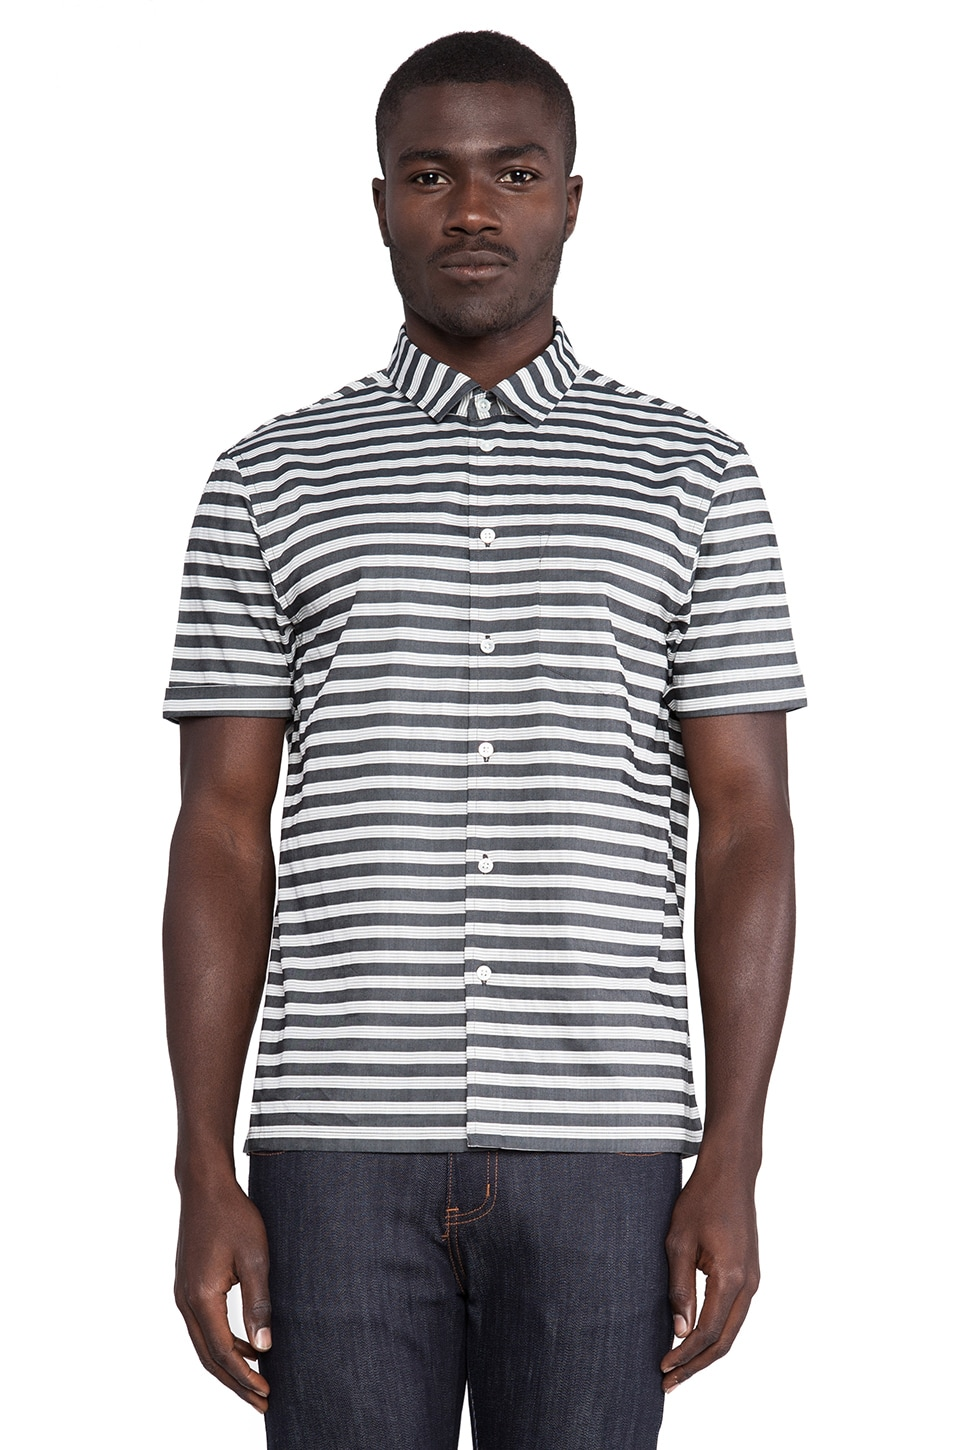 Marc by Marc Jacobs Brentwood Stripe Buttondown in Washed Ink Multi